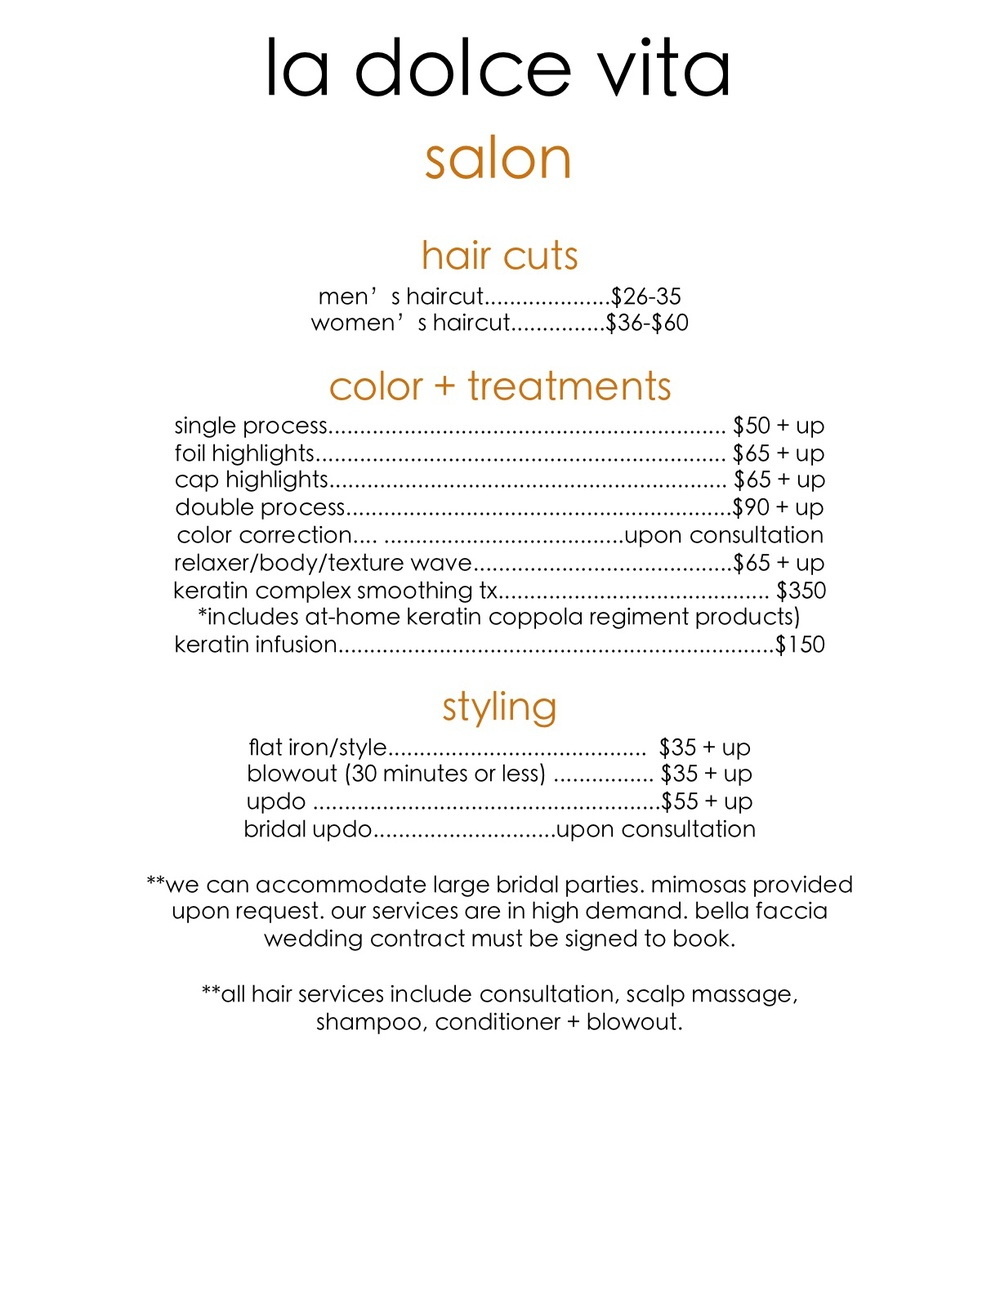 Salon menu la dolce vita salon spa for 3 fifty eight salon